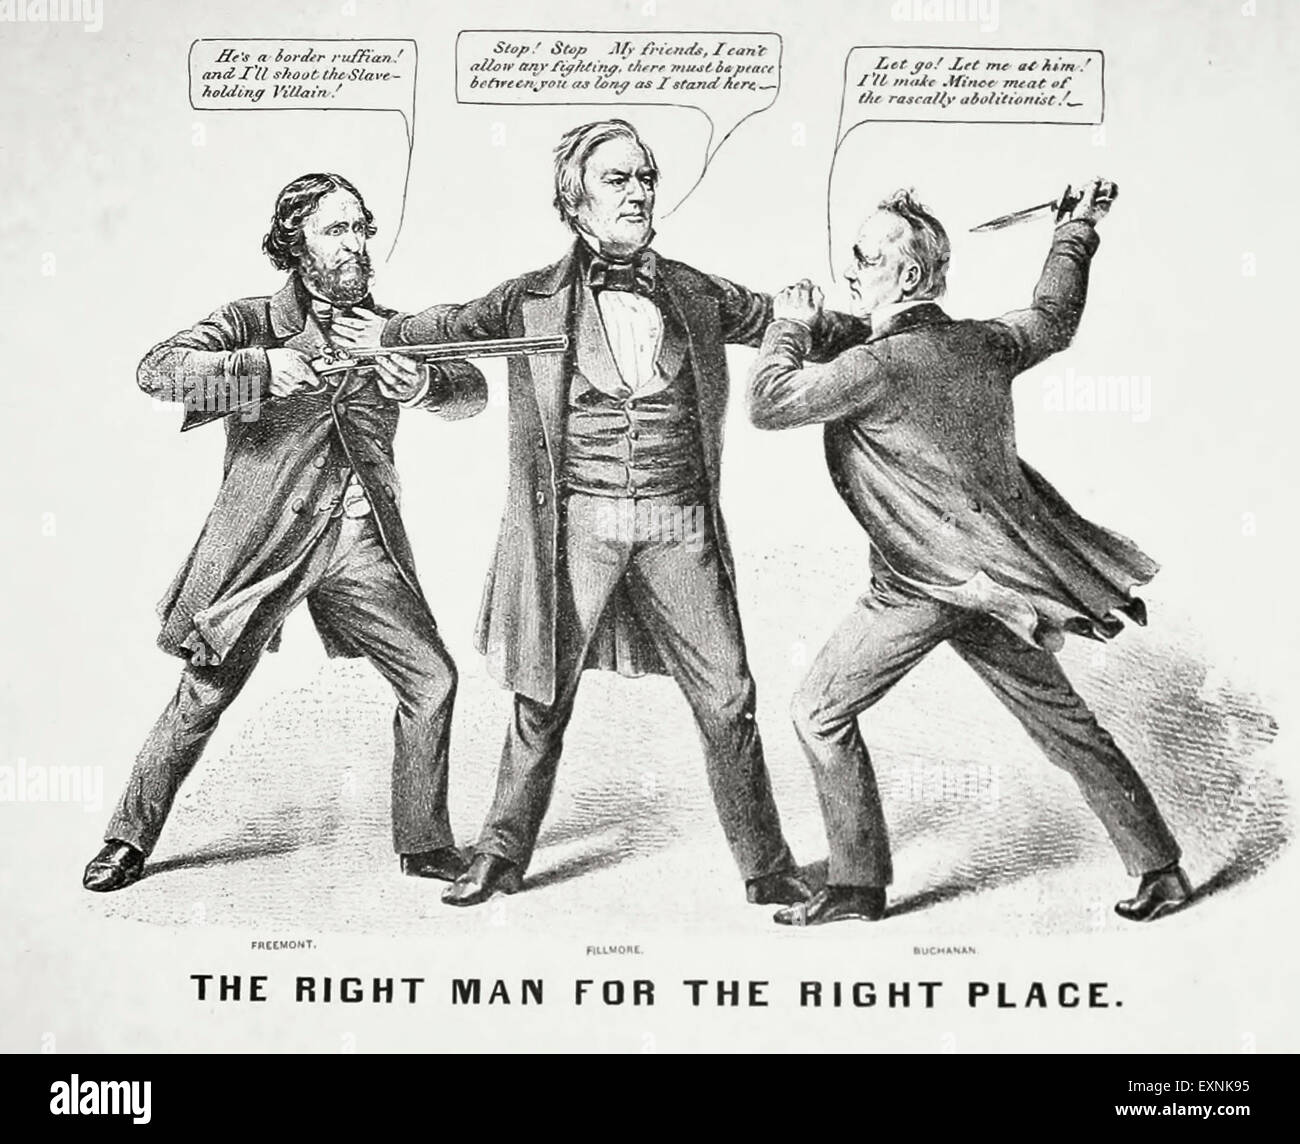 account of the presidential elections of 1856 james buchanan john fremont and millard fillmore Former united states president, millard fillmore,  election of 1856 began on an  victory with james buchanan becoming president and john .